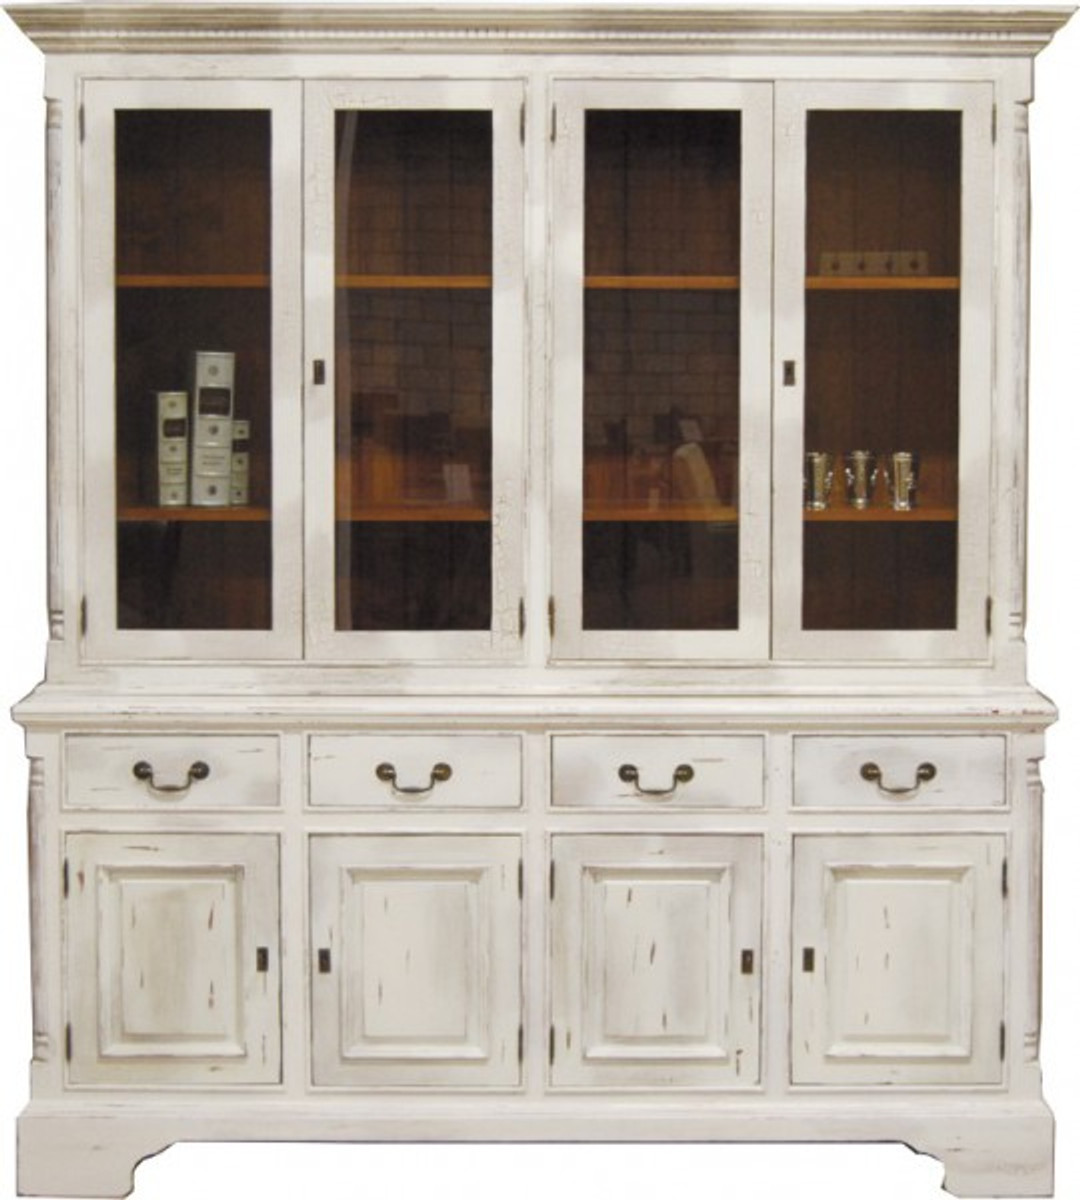 casa padrino vintage buffetschrank antik stil weiss holzfarben h 219 x b 189 cm vitrine. Black Bedroom Furniture Sets. Home Design Ideas